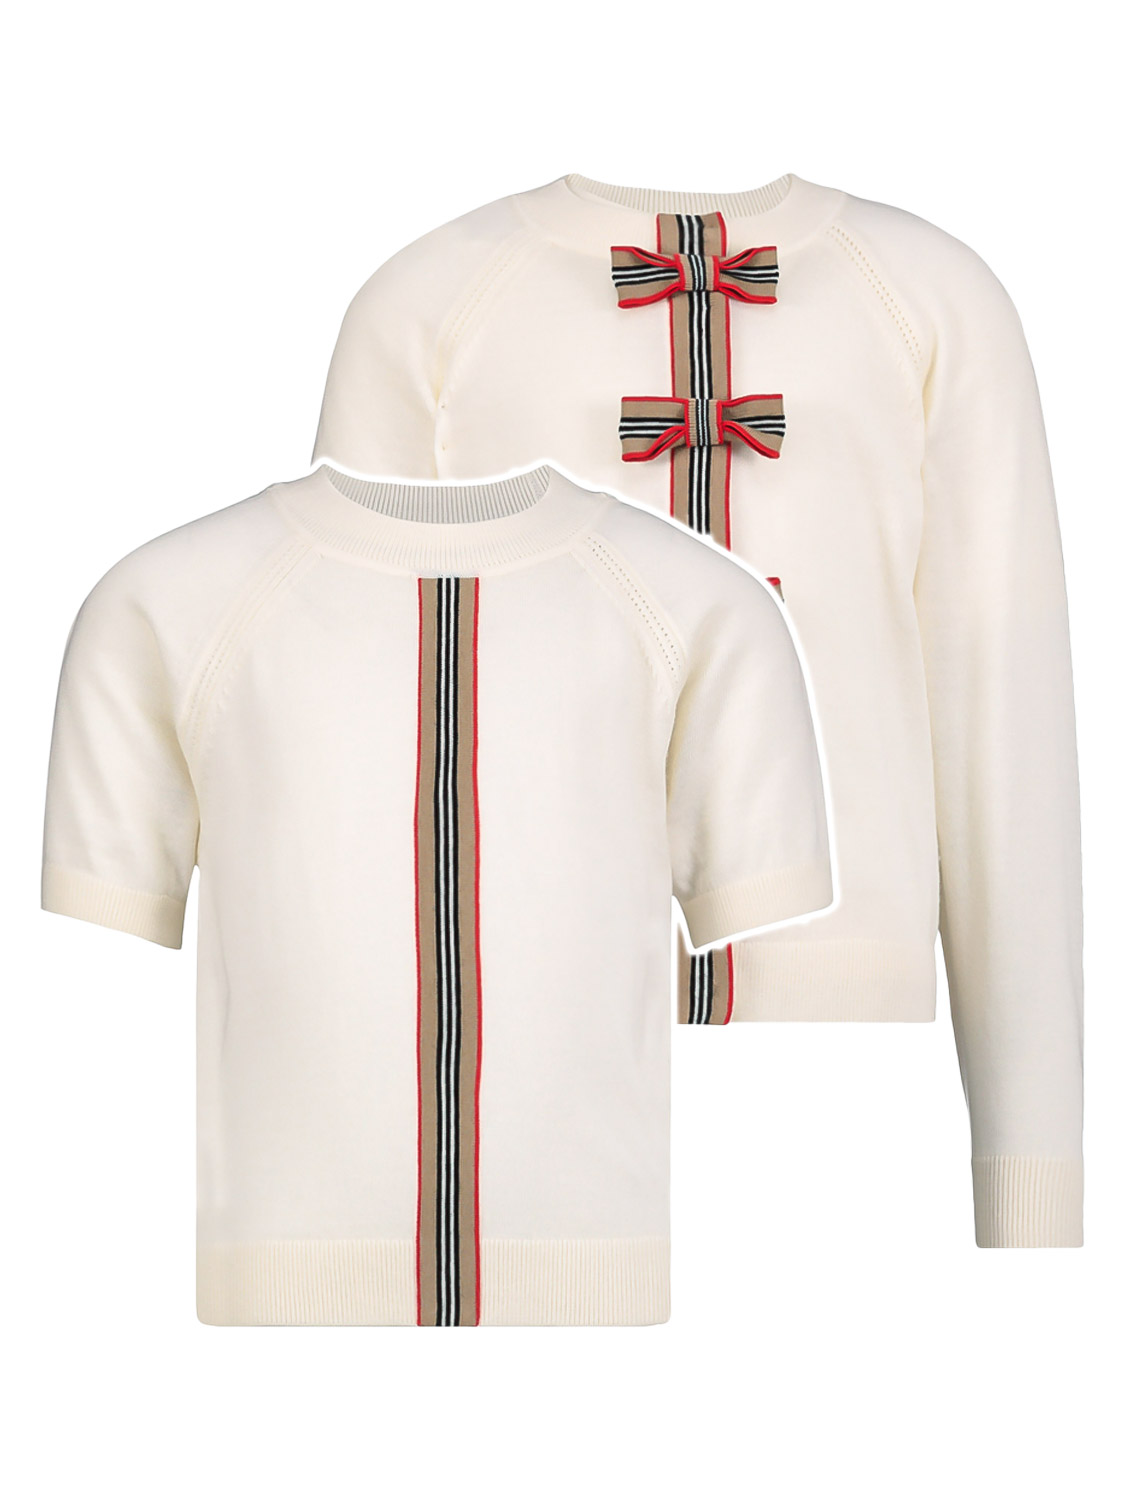 Burberry Kids Clothing Set For Girls In White